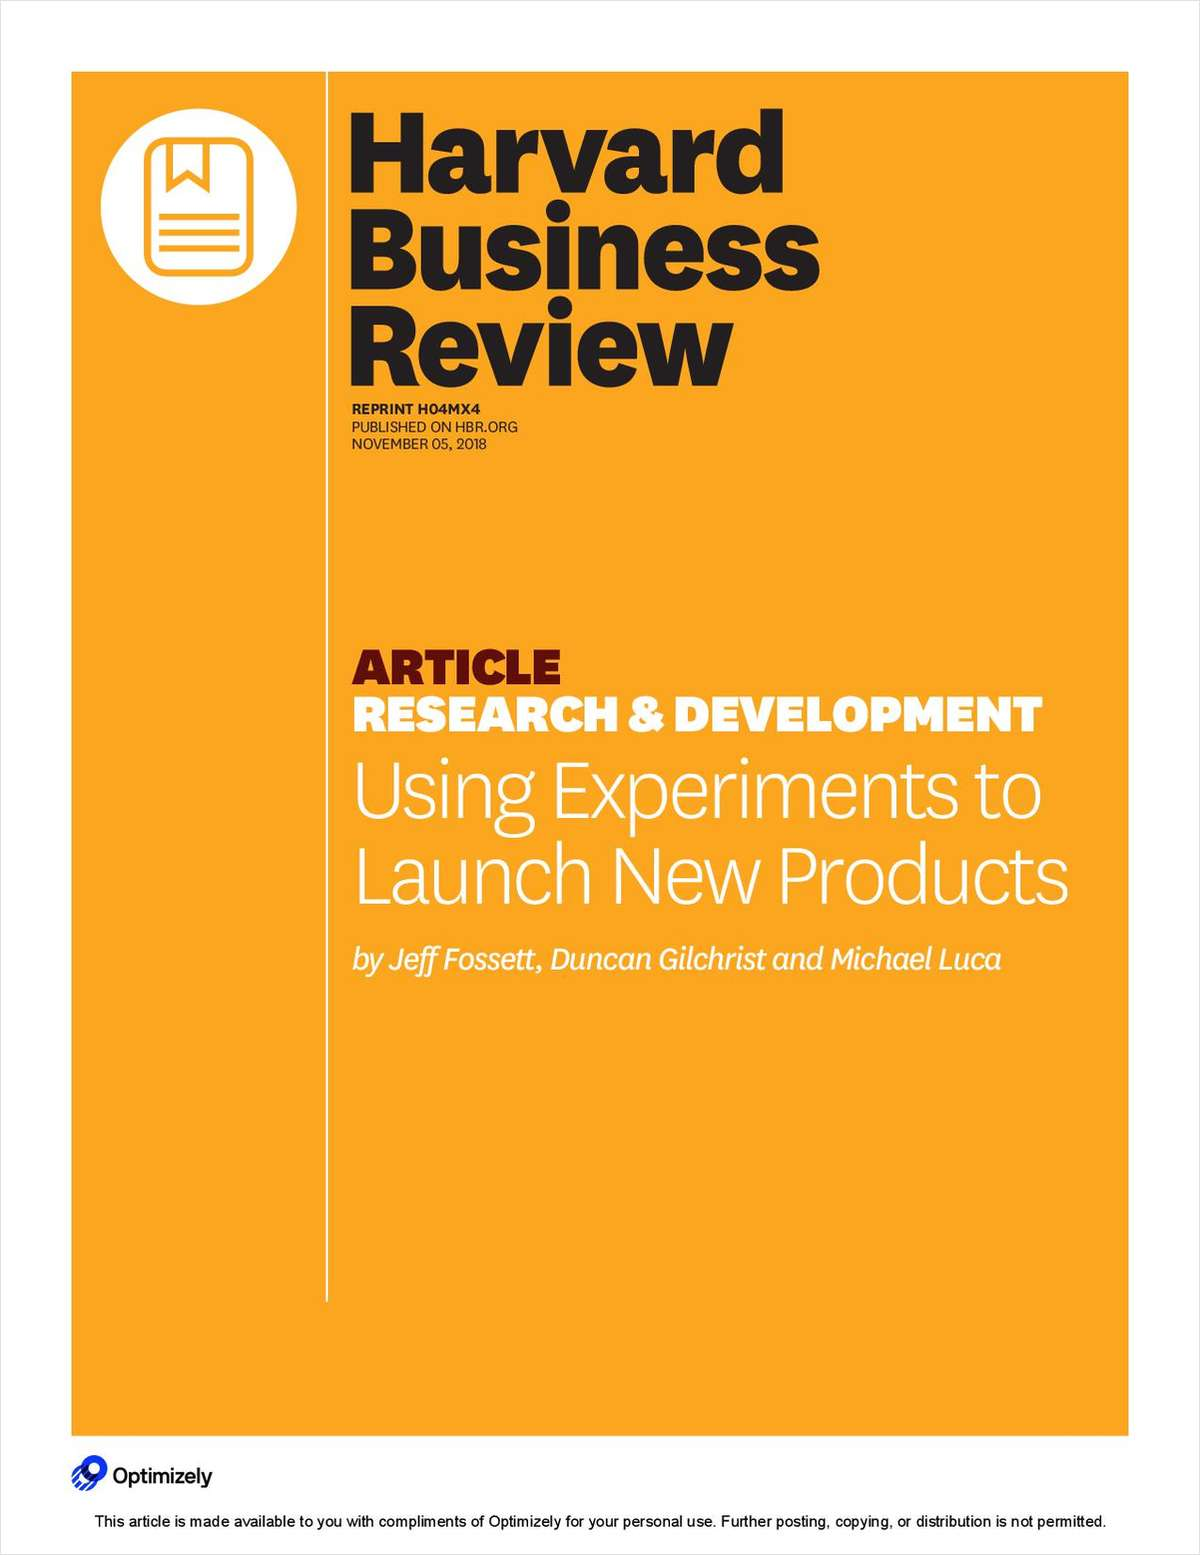 Harvard Business Review: Using Experiments to launch New Products